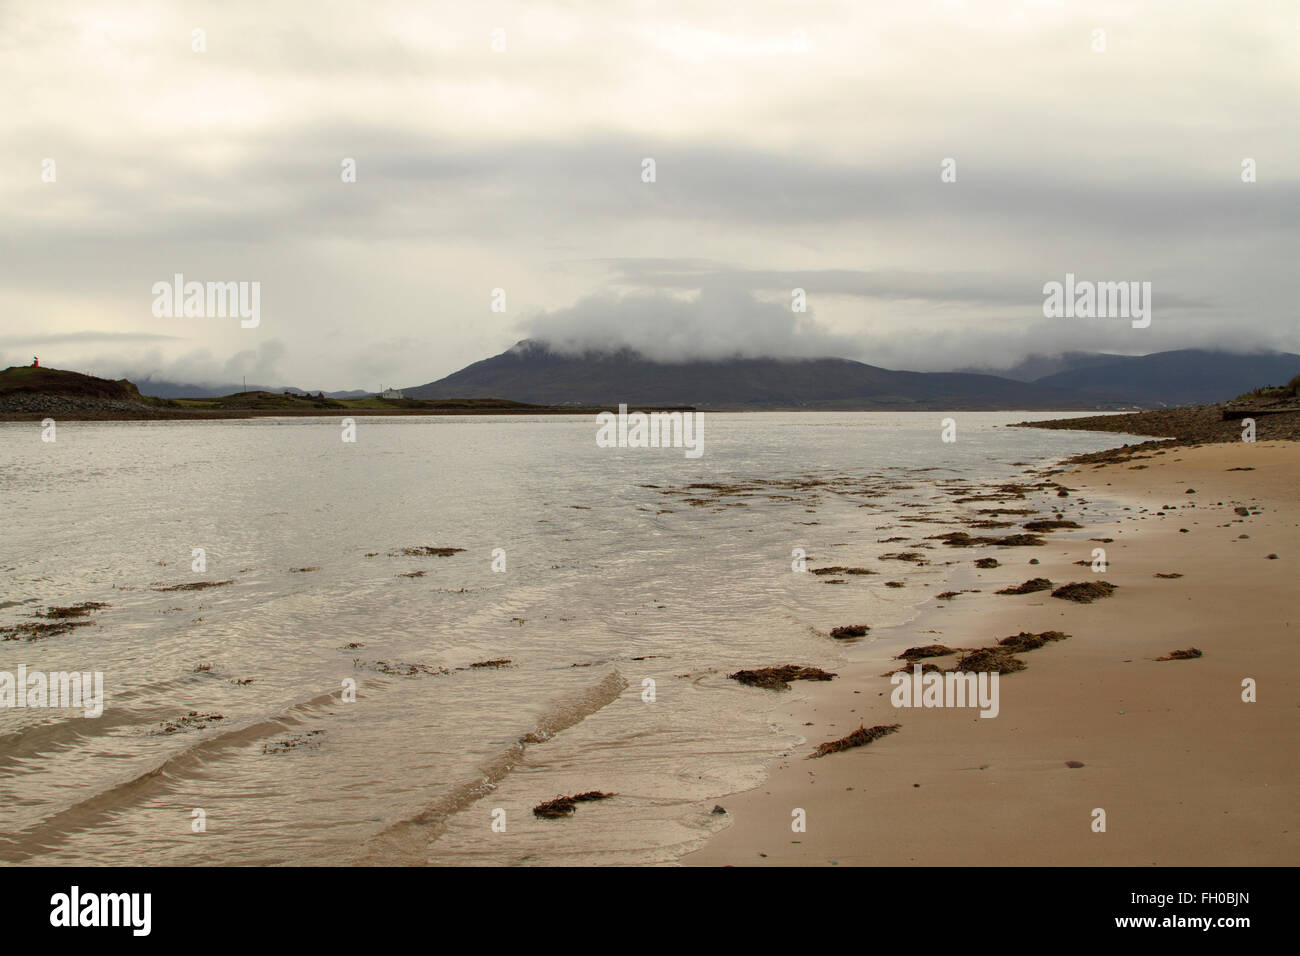 A deserted strand on Achill Island, Co. Mayo, West of Ireland with a mist covered mountain in the background - Stock Image